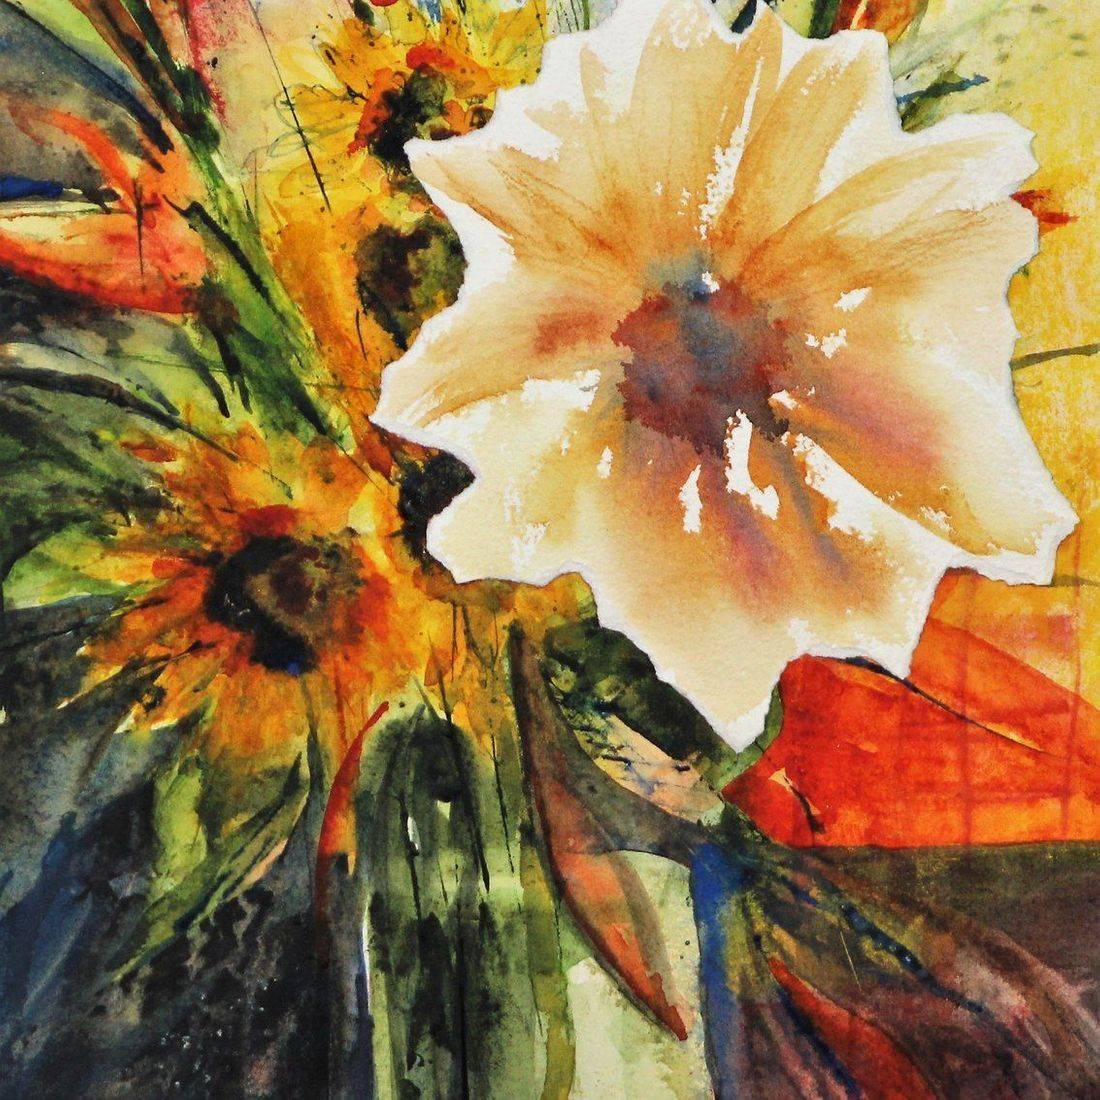 R Putbrese watercolor collage painting of sunflowers in a vase by Rebecca Krutsinger